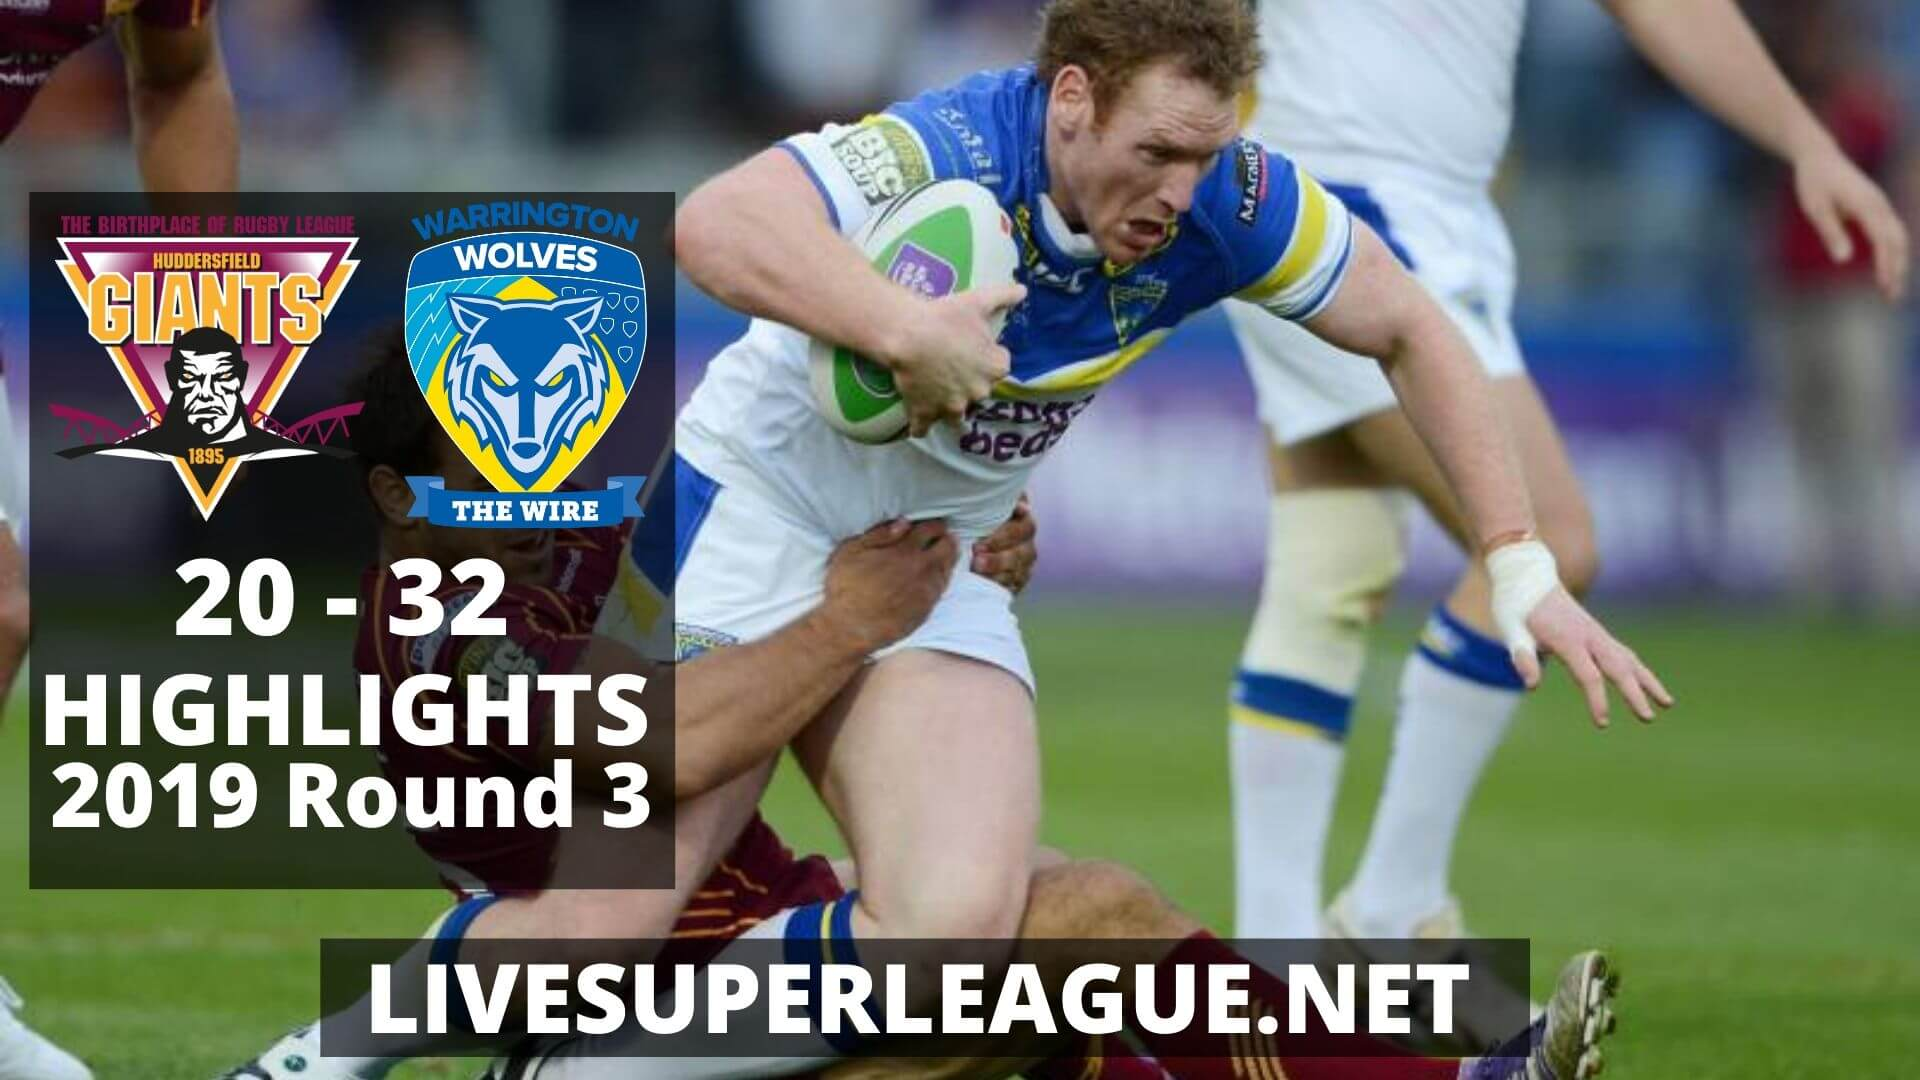 Huddersfield Giants Vs Warrington Wolves Highlights 2019 Round 3